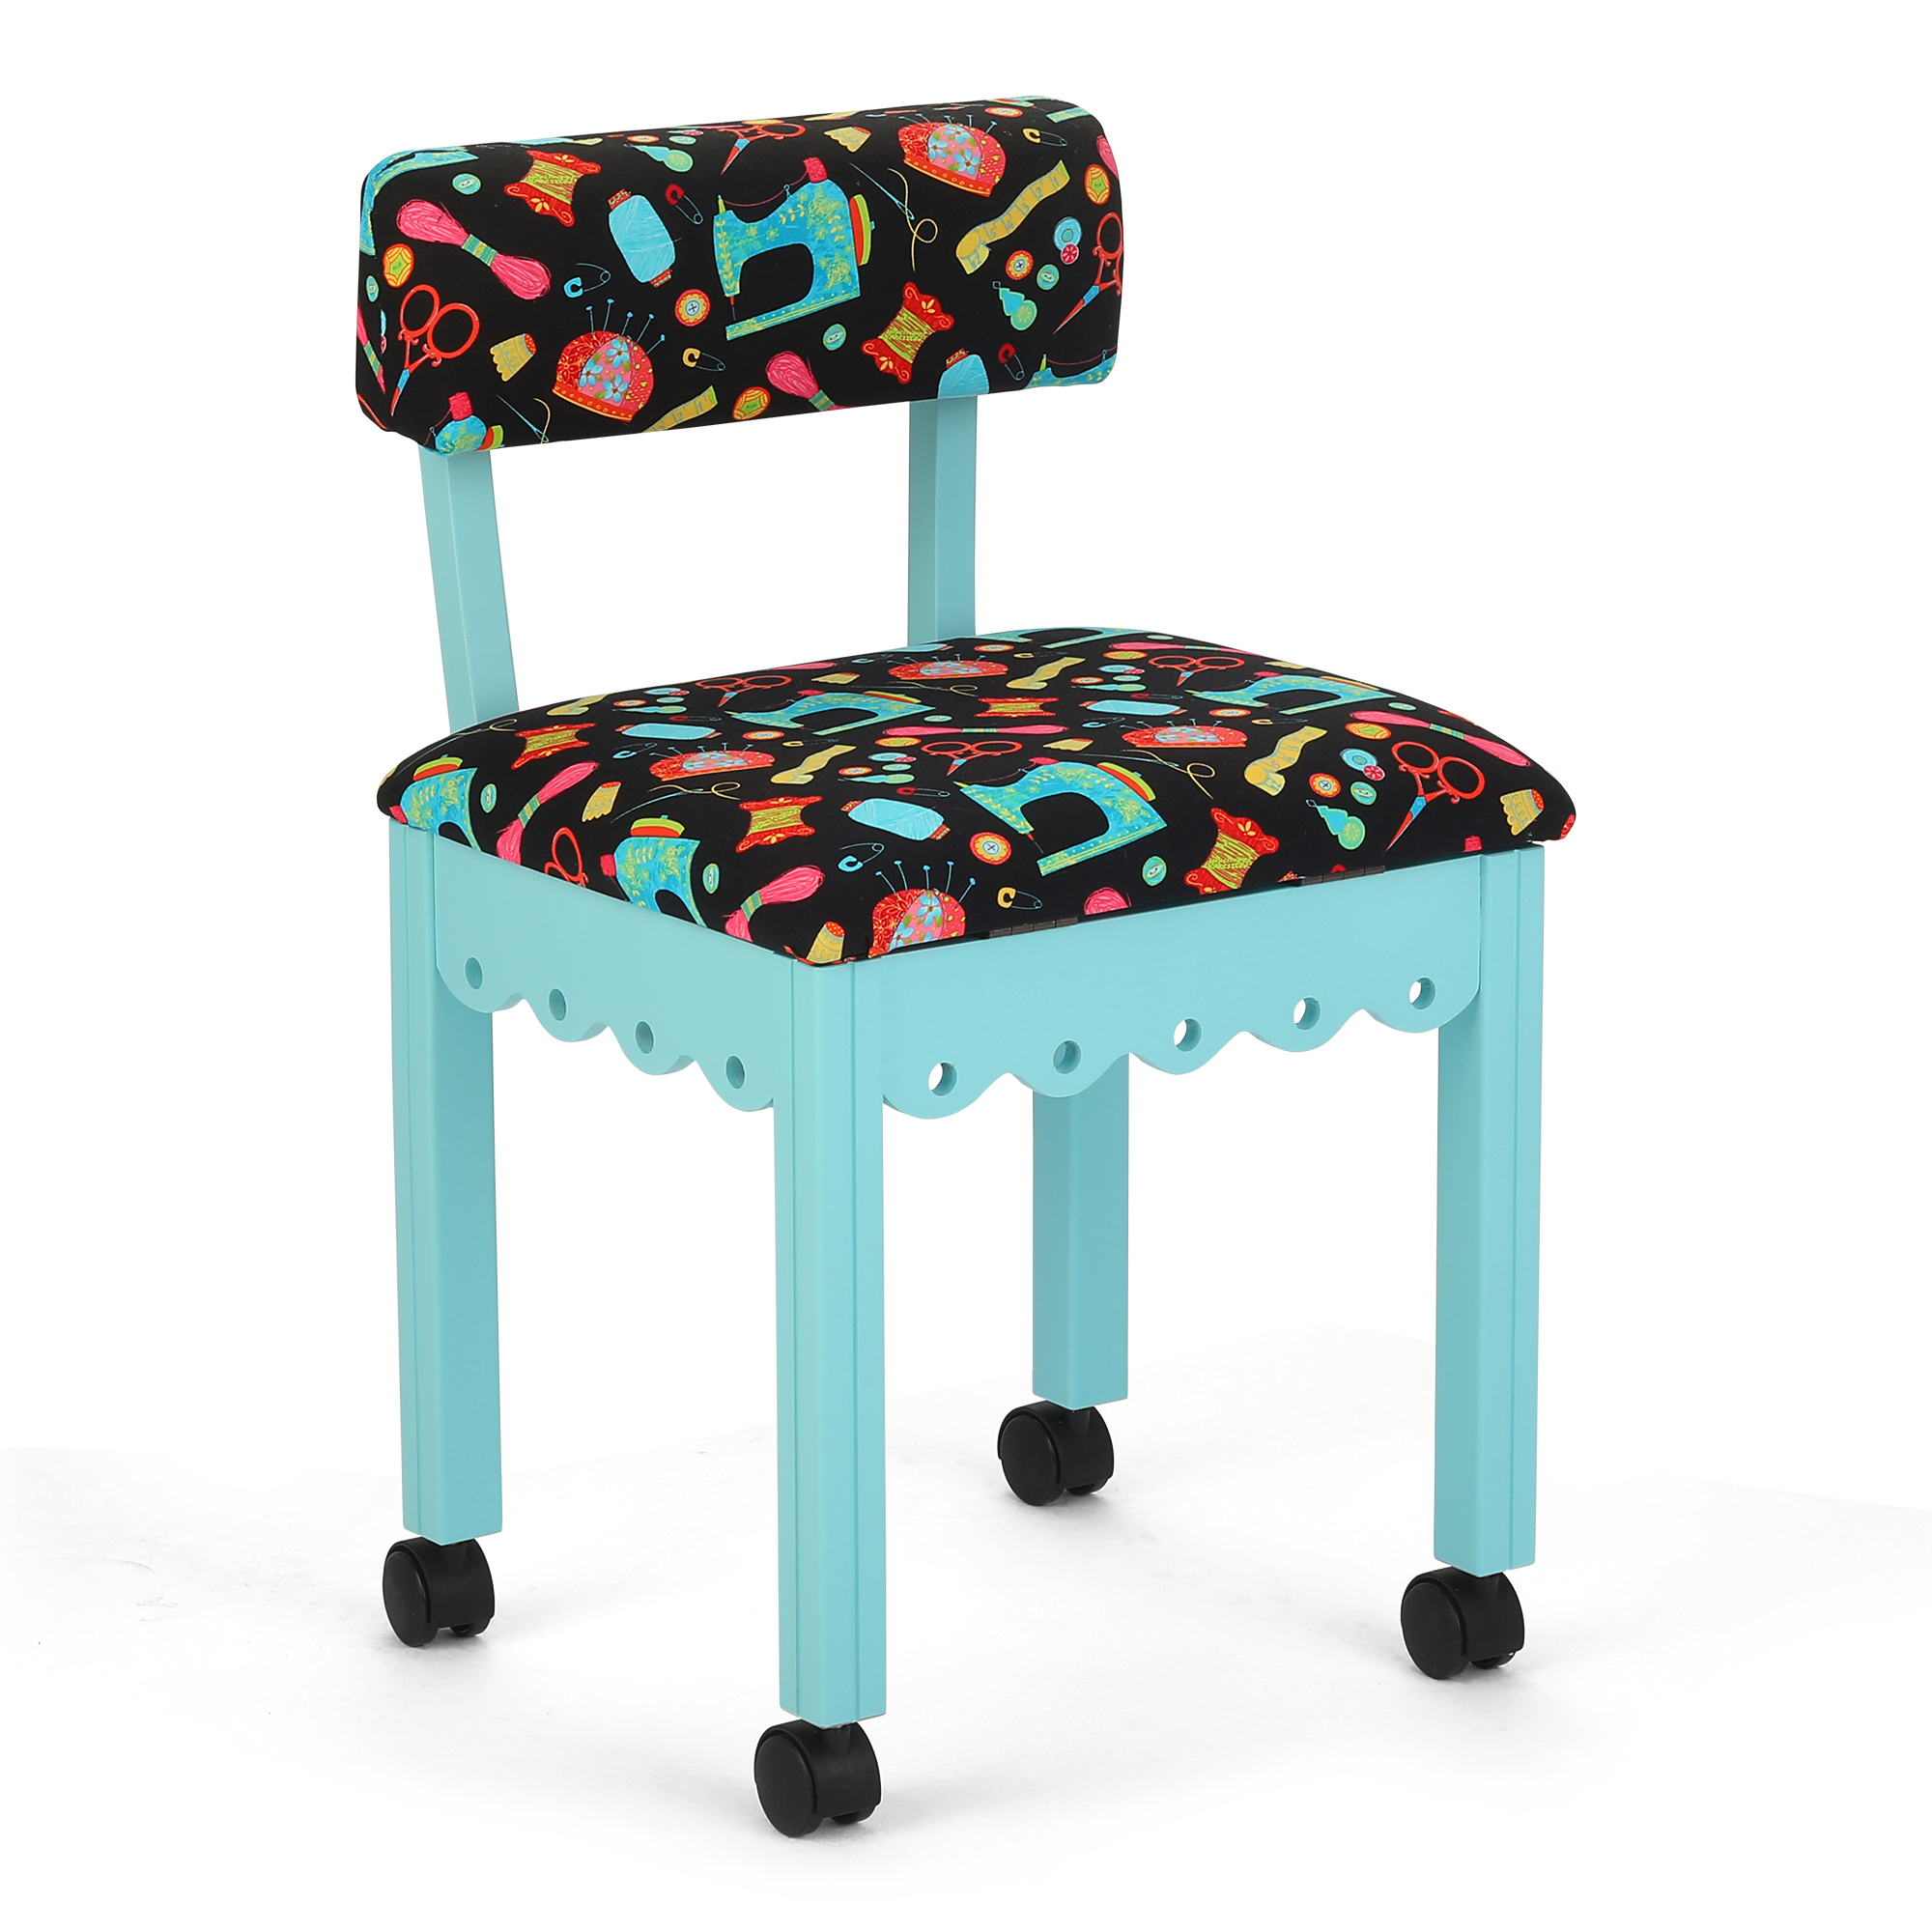 Awesome Arrow Wood Sewing And Craft Chair With Gingerbread Design Under Seat Storage And Print Upholstery Fabric Andrewgaddart Wooden Chair Designs For Living Room Andrewgaddartcom